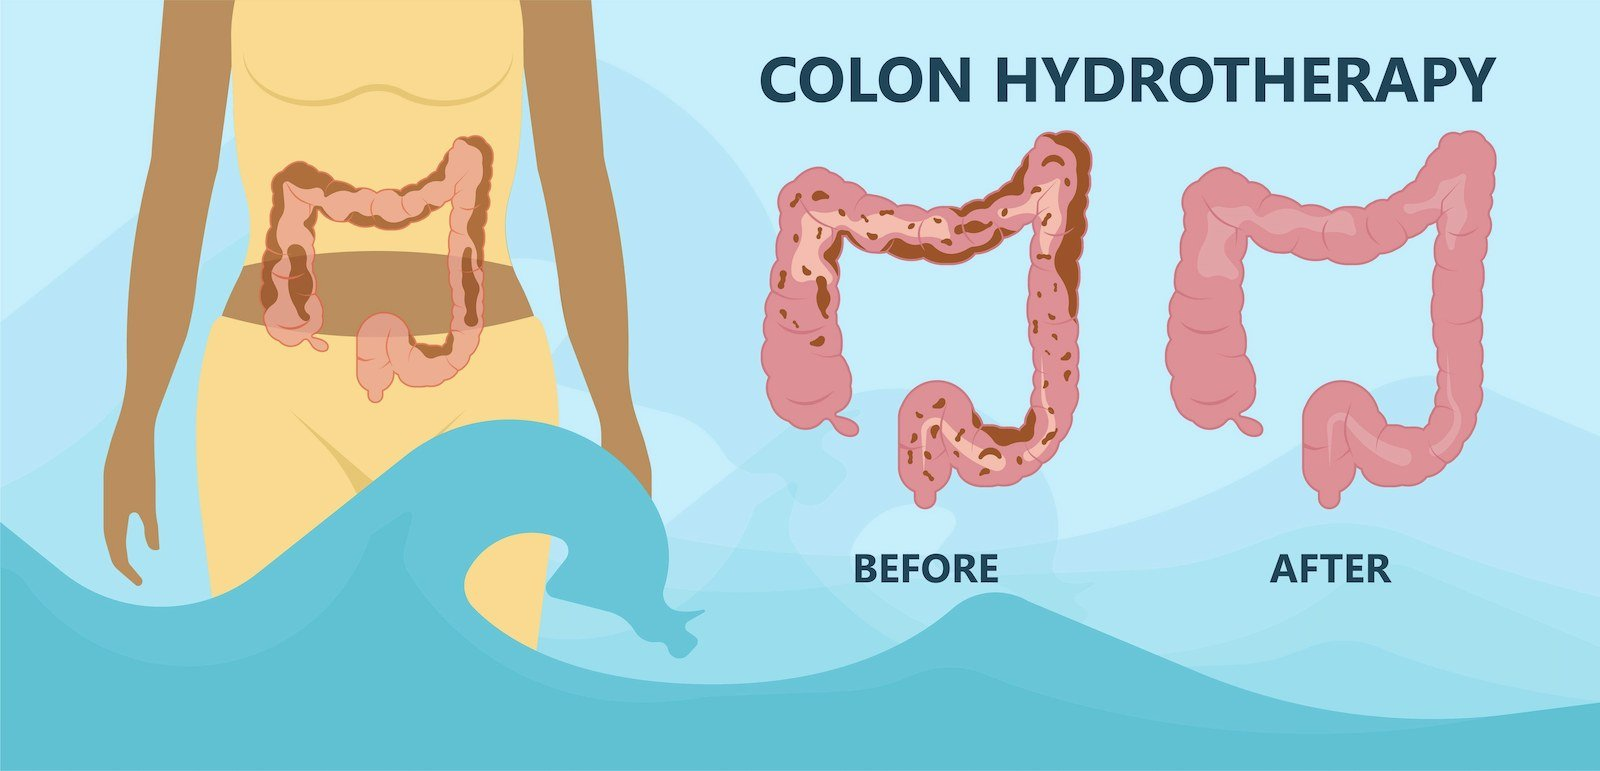 Illustration showing the intestine before and after colon hydrotherapy